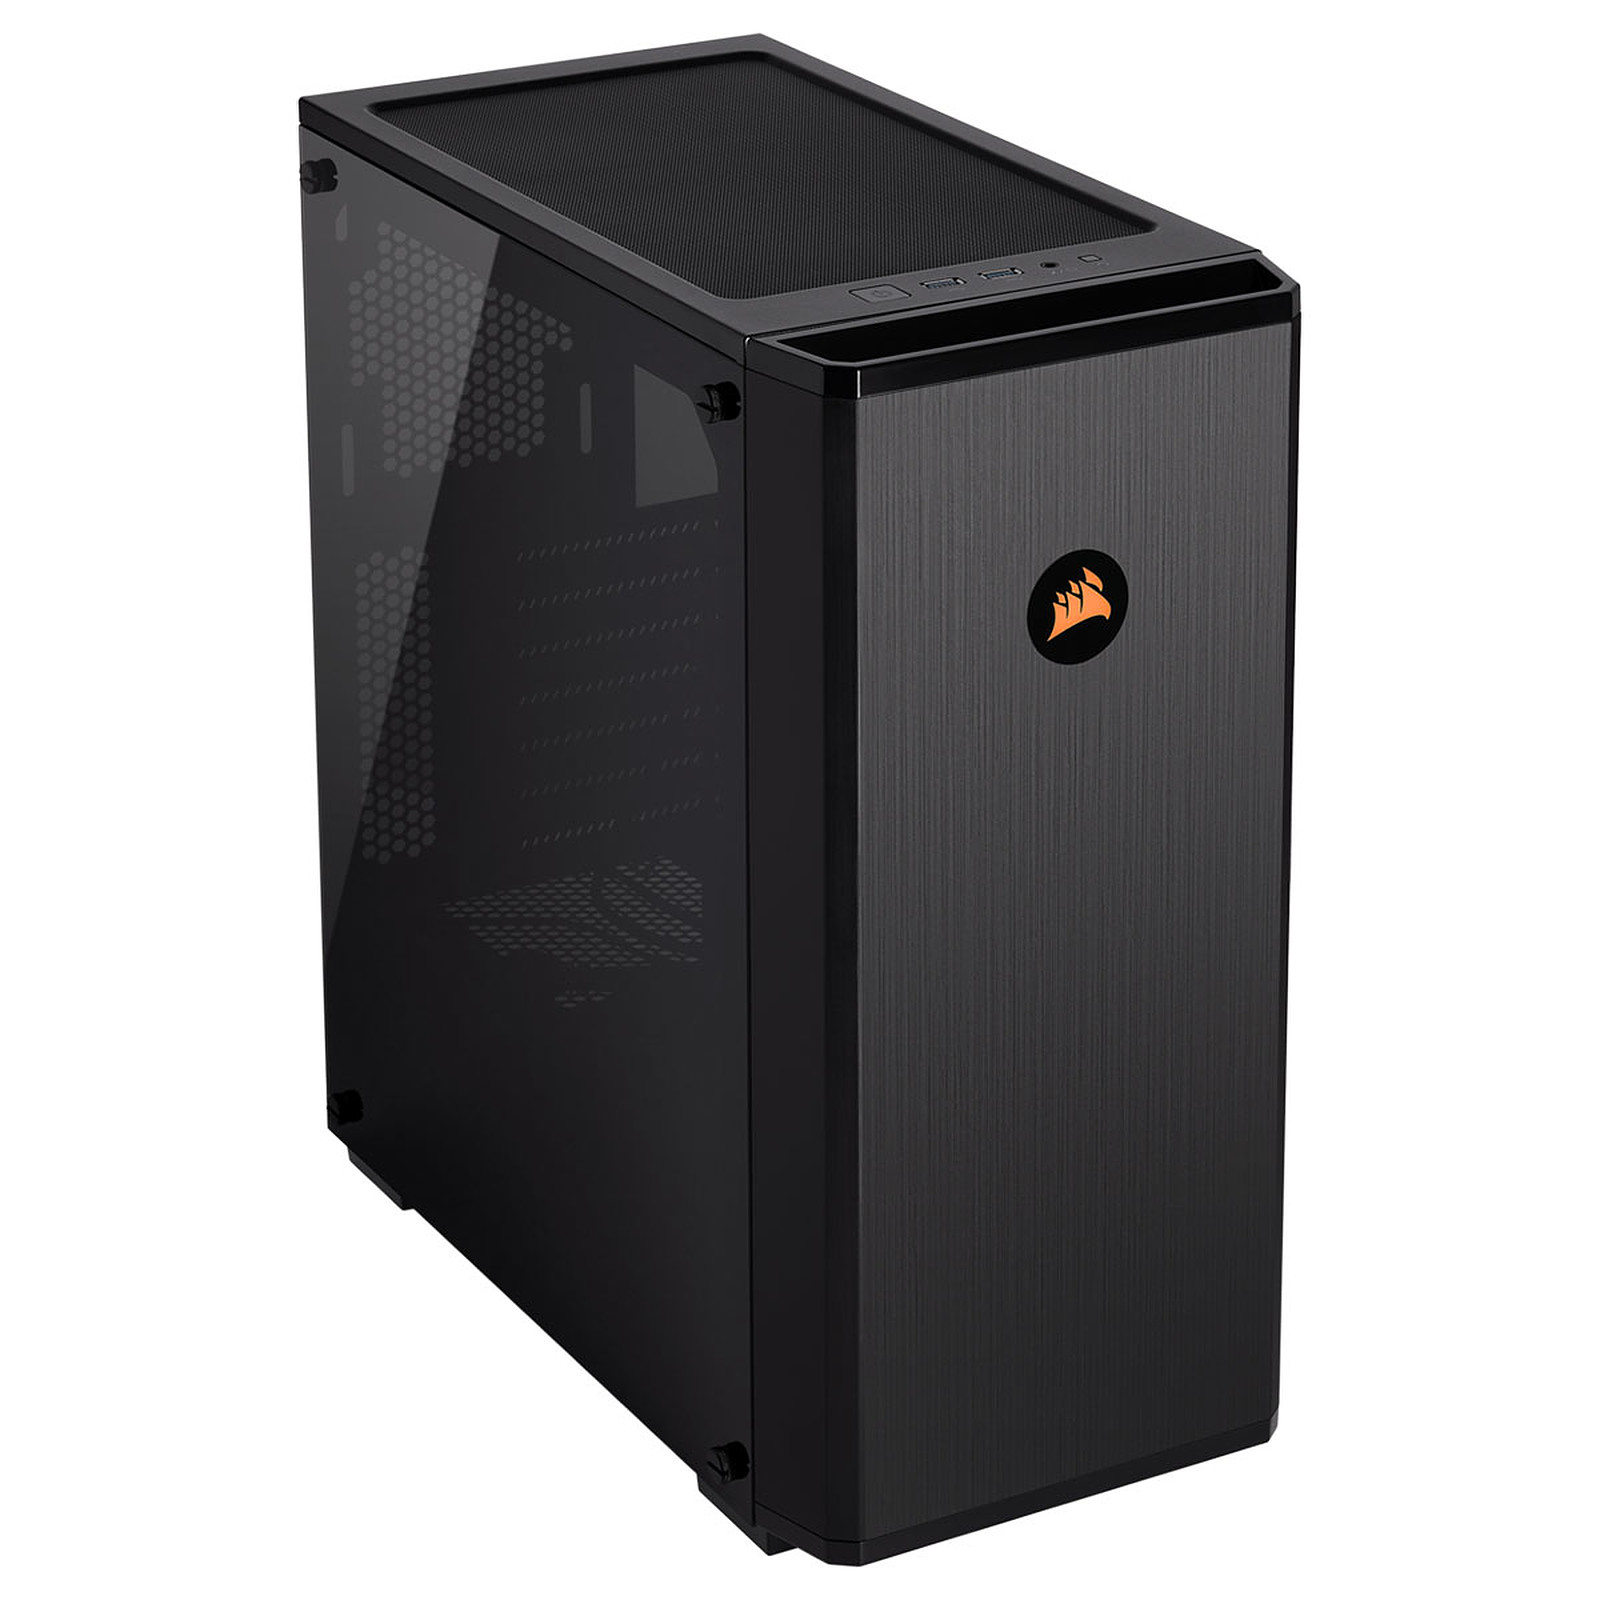 CASE CORSAIR GAMING MIDDLE TOWER 175R RGB CARBIDE SERIES TEMPERED GLASS BLACK CC-9011171-WW, Case & Power Supply